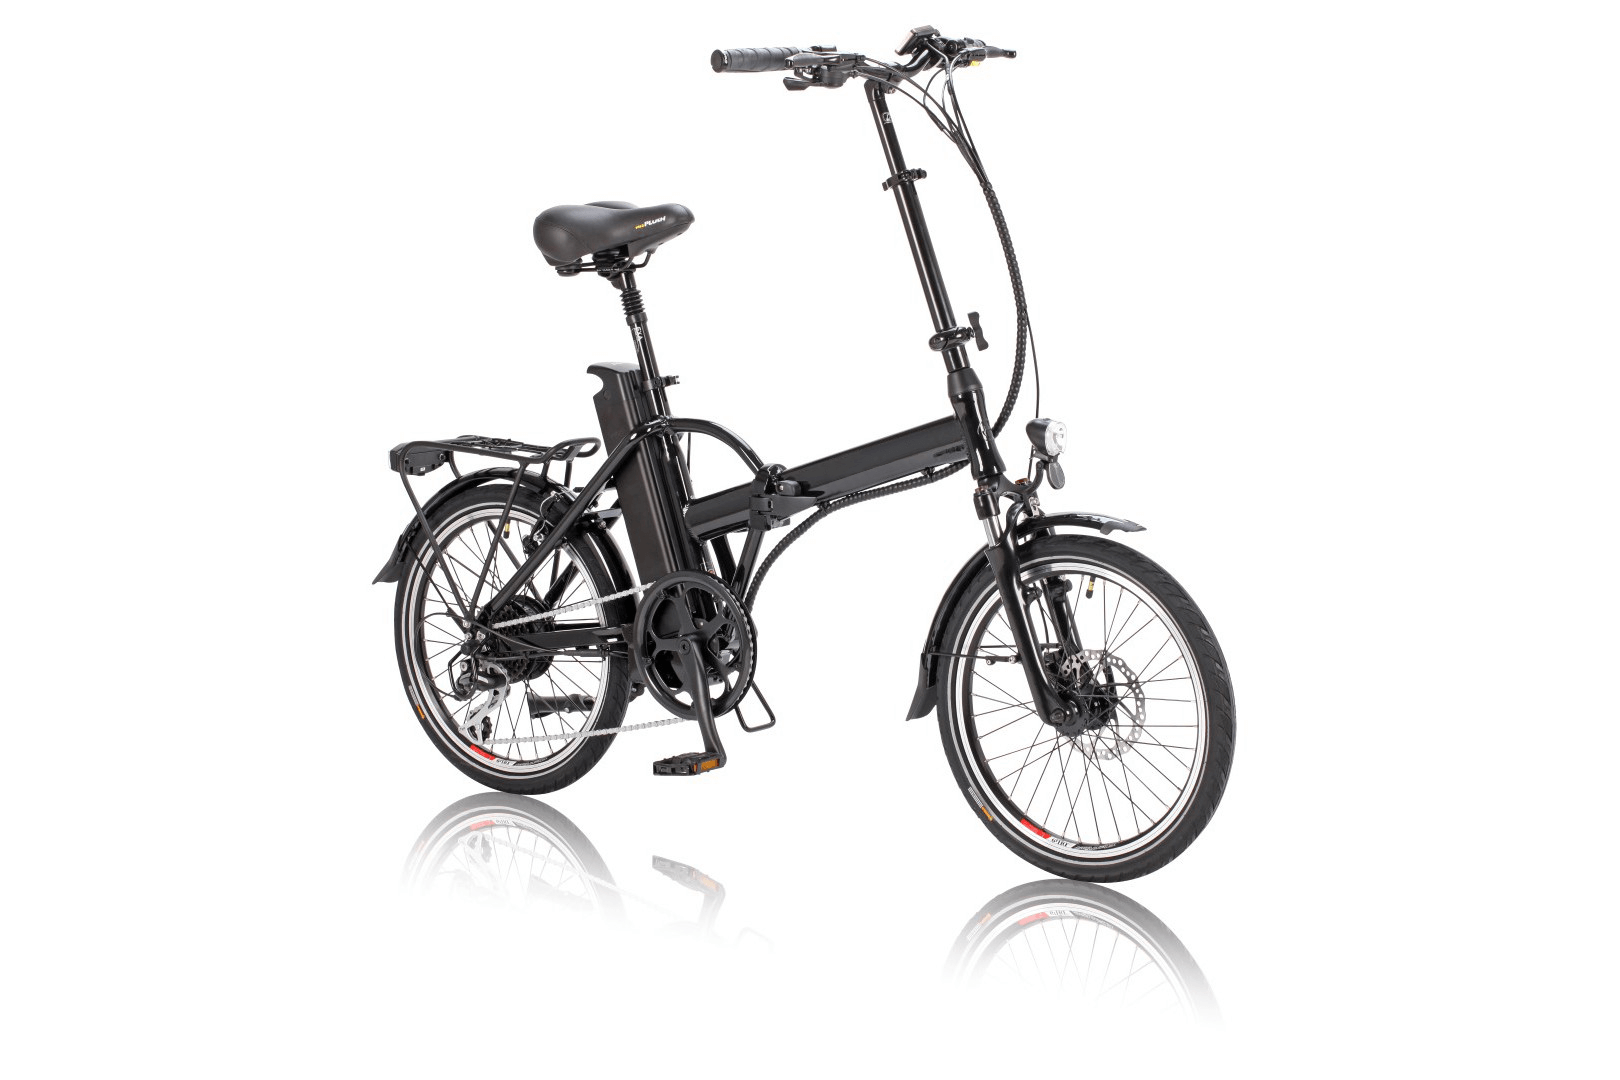 20 Inch Multifaceted Foldable E Bike Eb5 From China